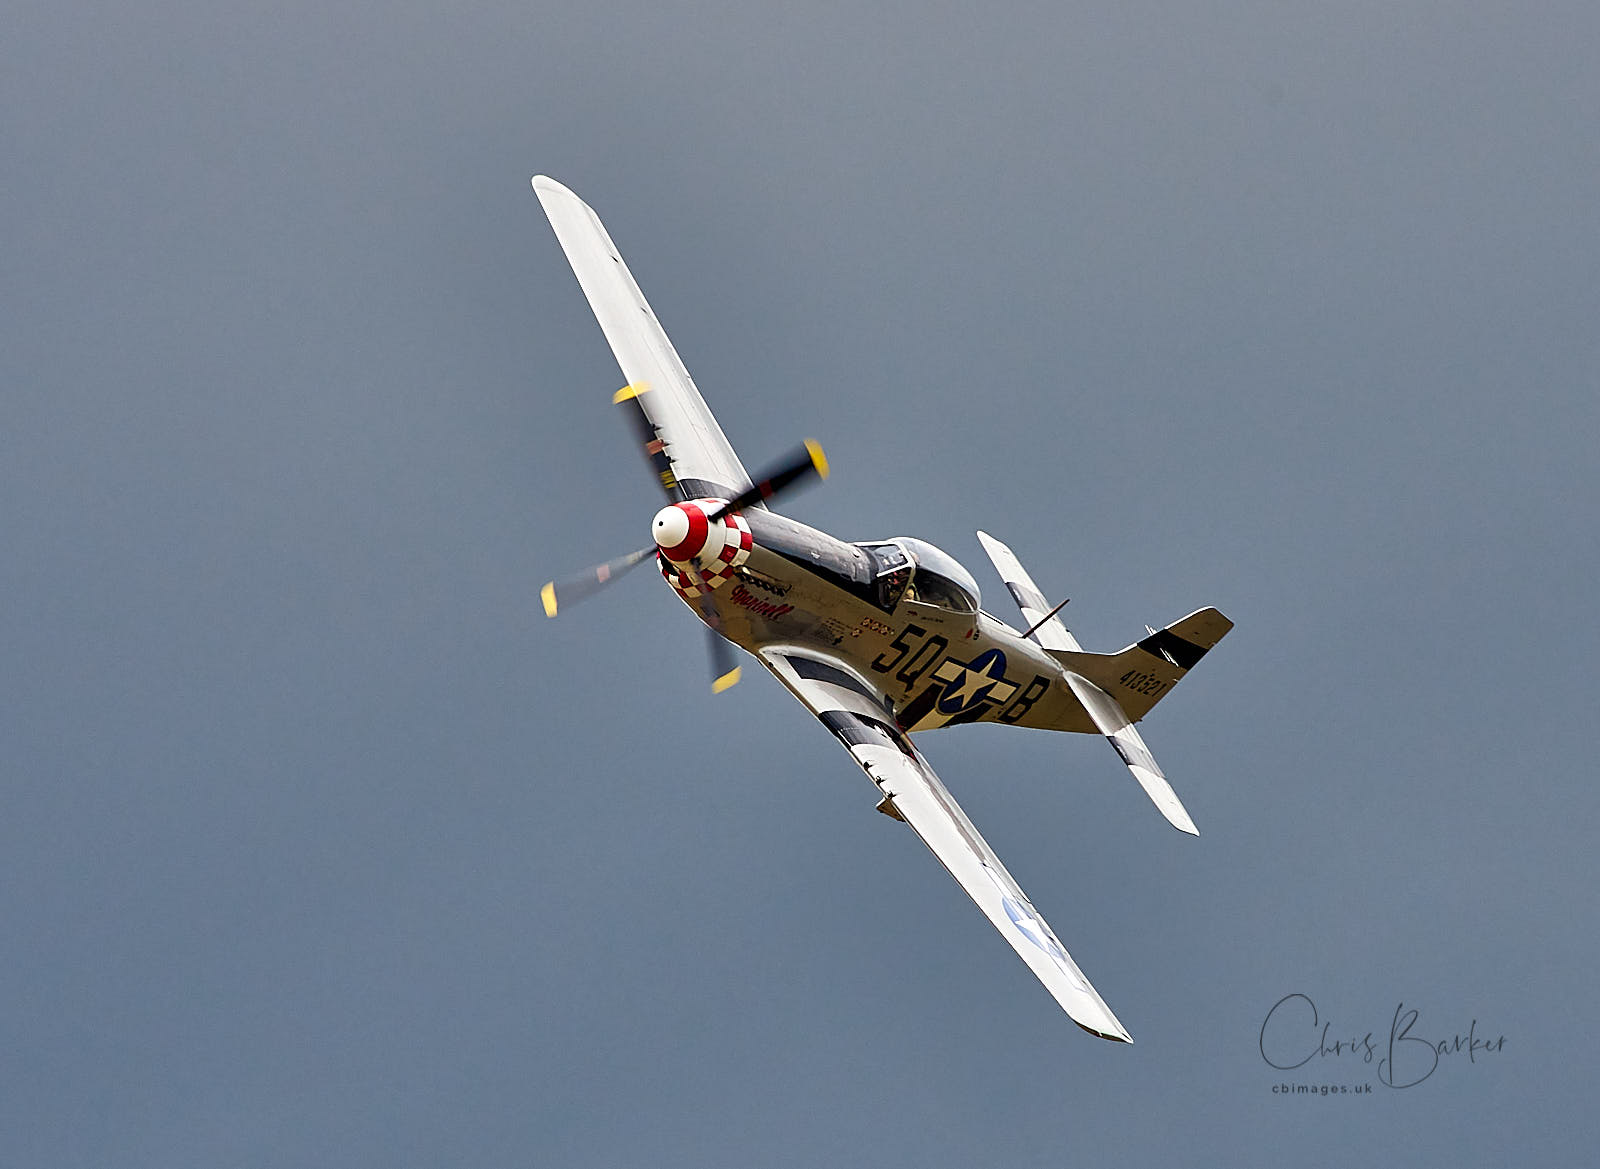 A P-51 Mustang flying towards the camera